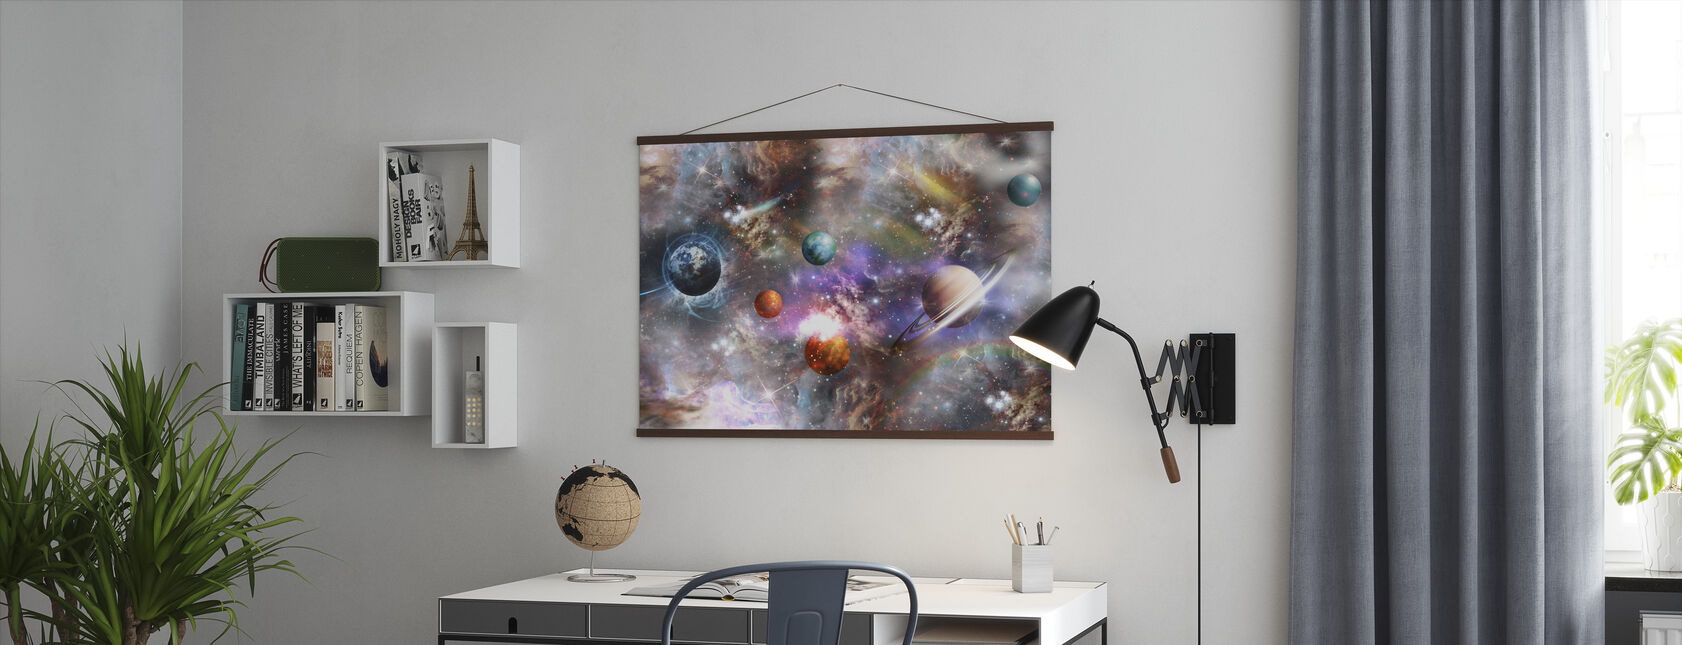 Vibrant Space - Poster - Office